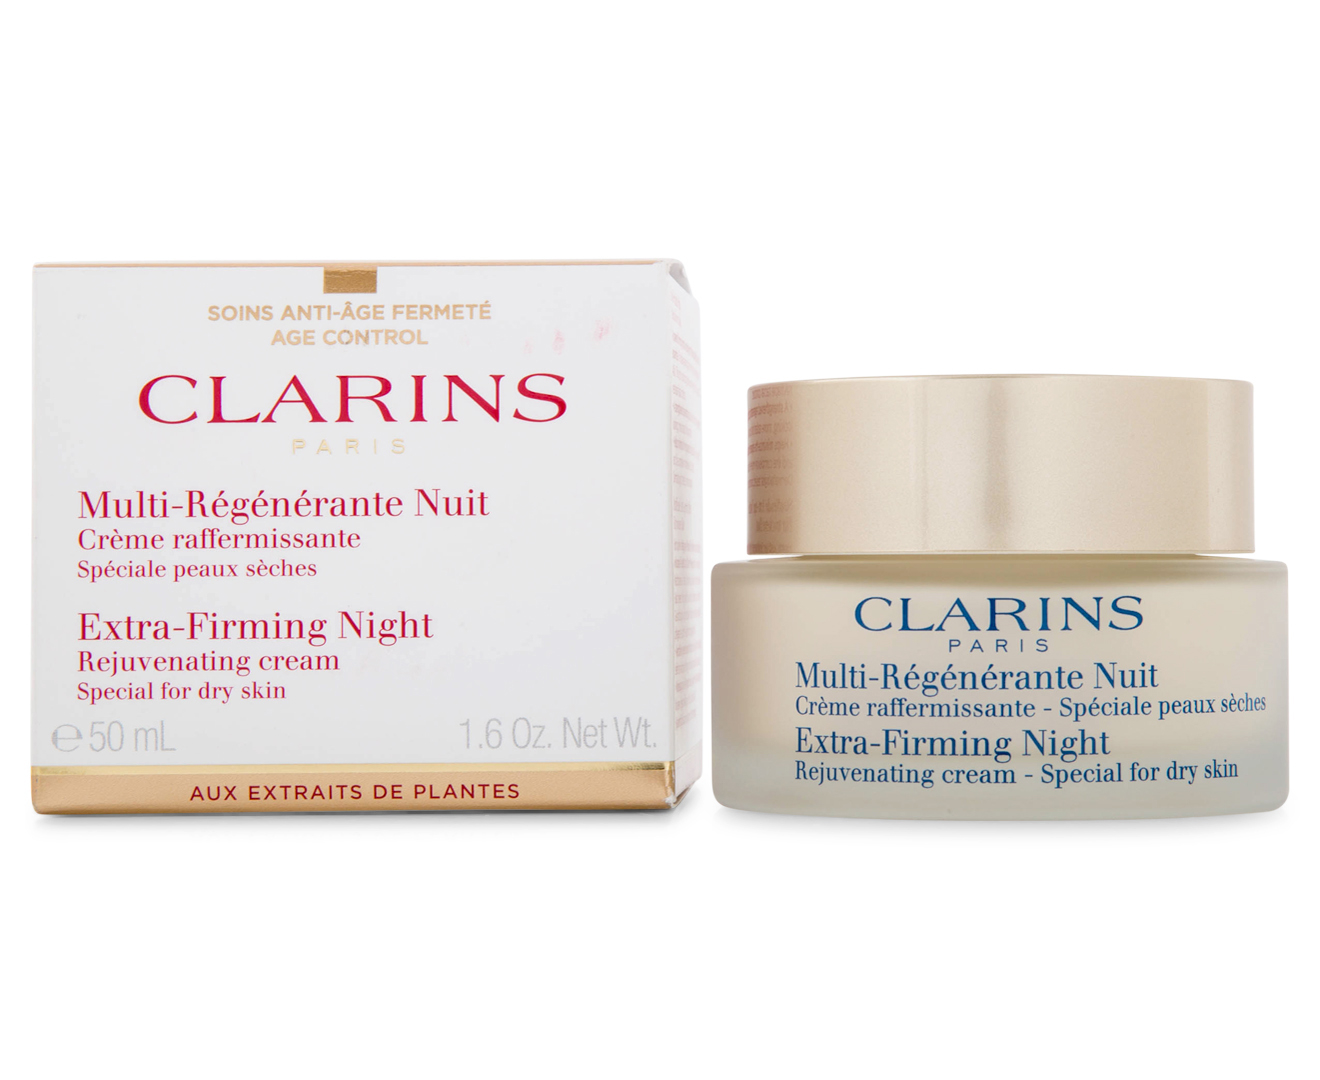 Clarins Extra Firming Night Cream 50ml Dry Skin Great Daily Day 15ml Deals At Australias Favourite Superstore